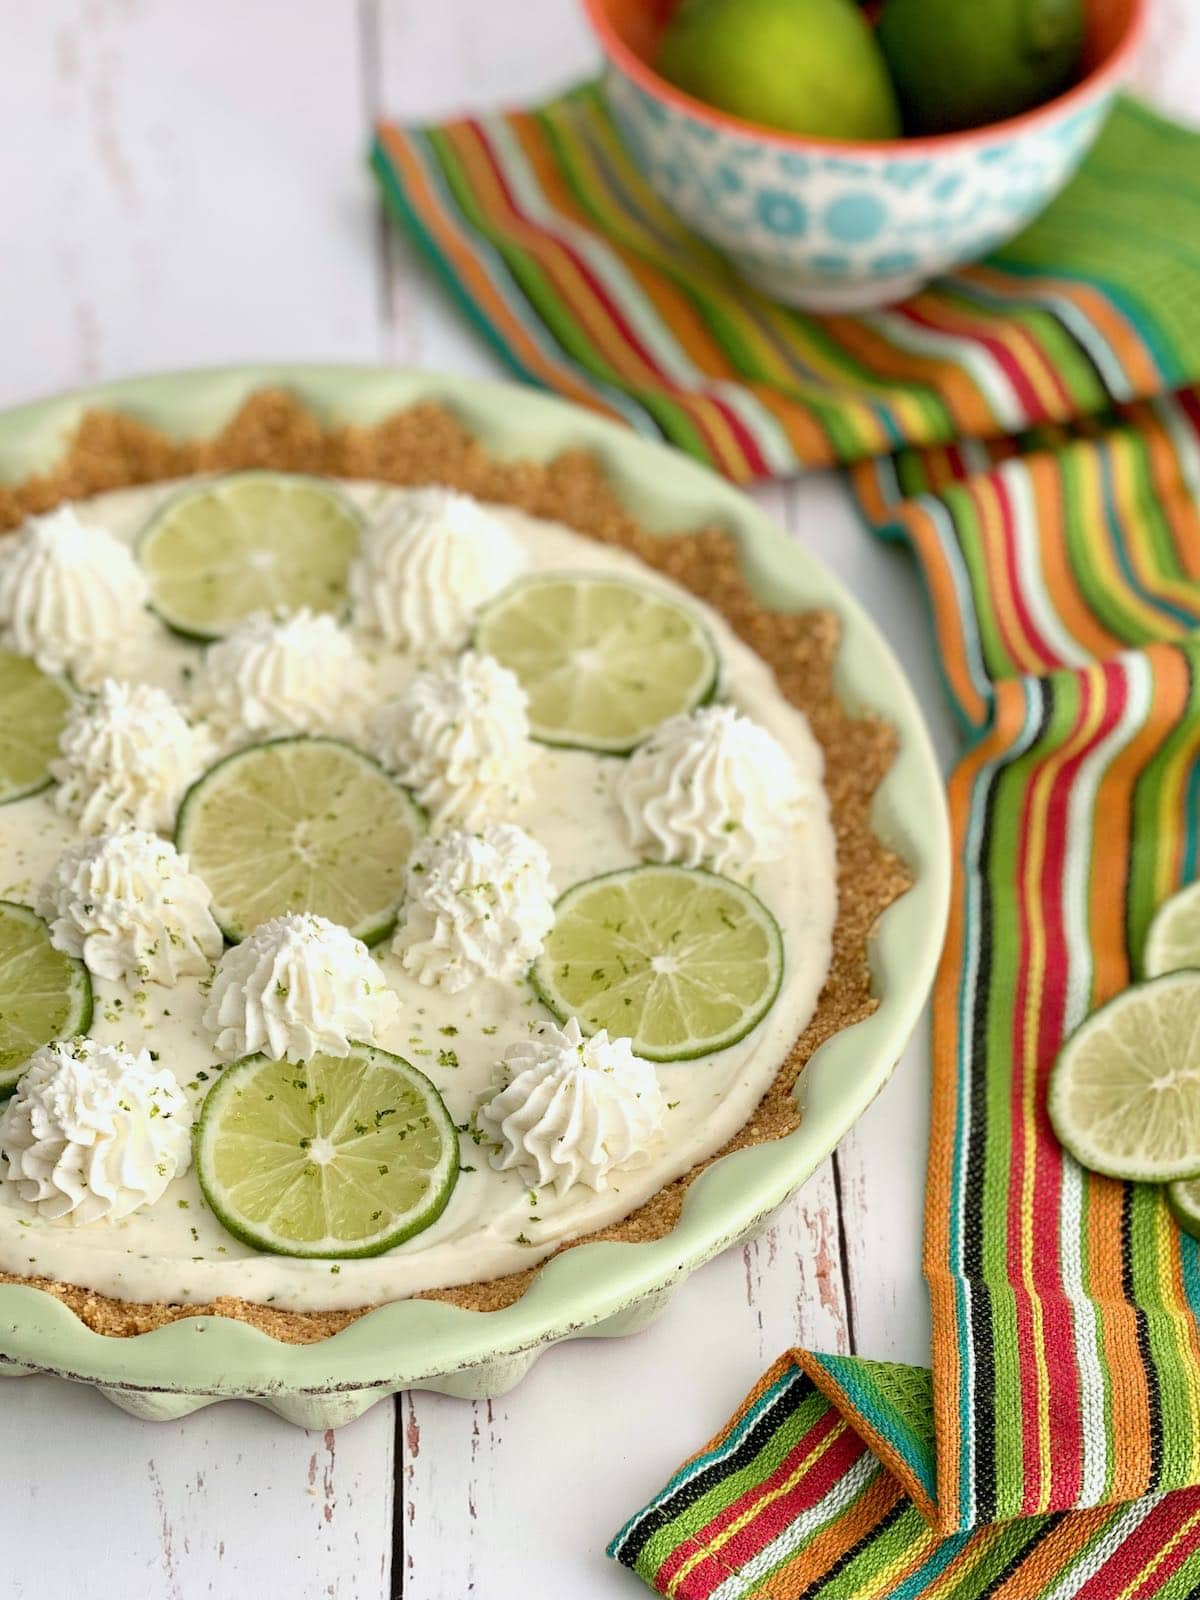 key lime pie decorated with whipped cream and limes.